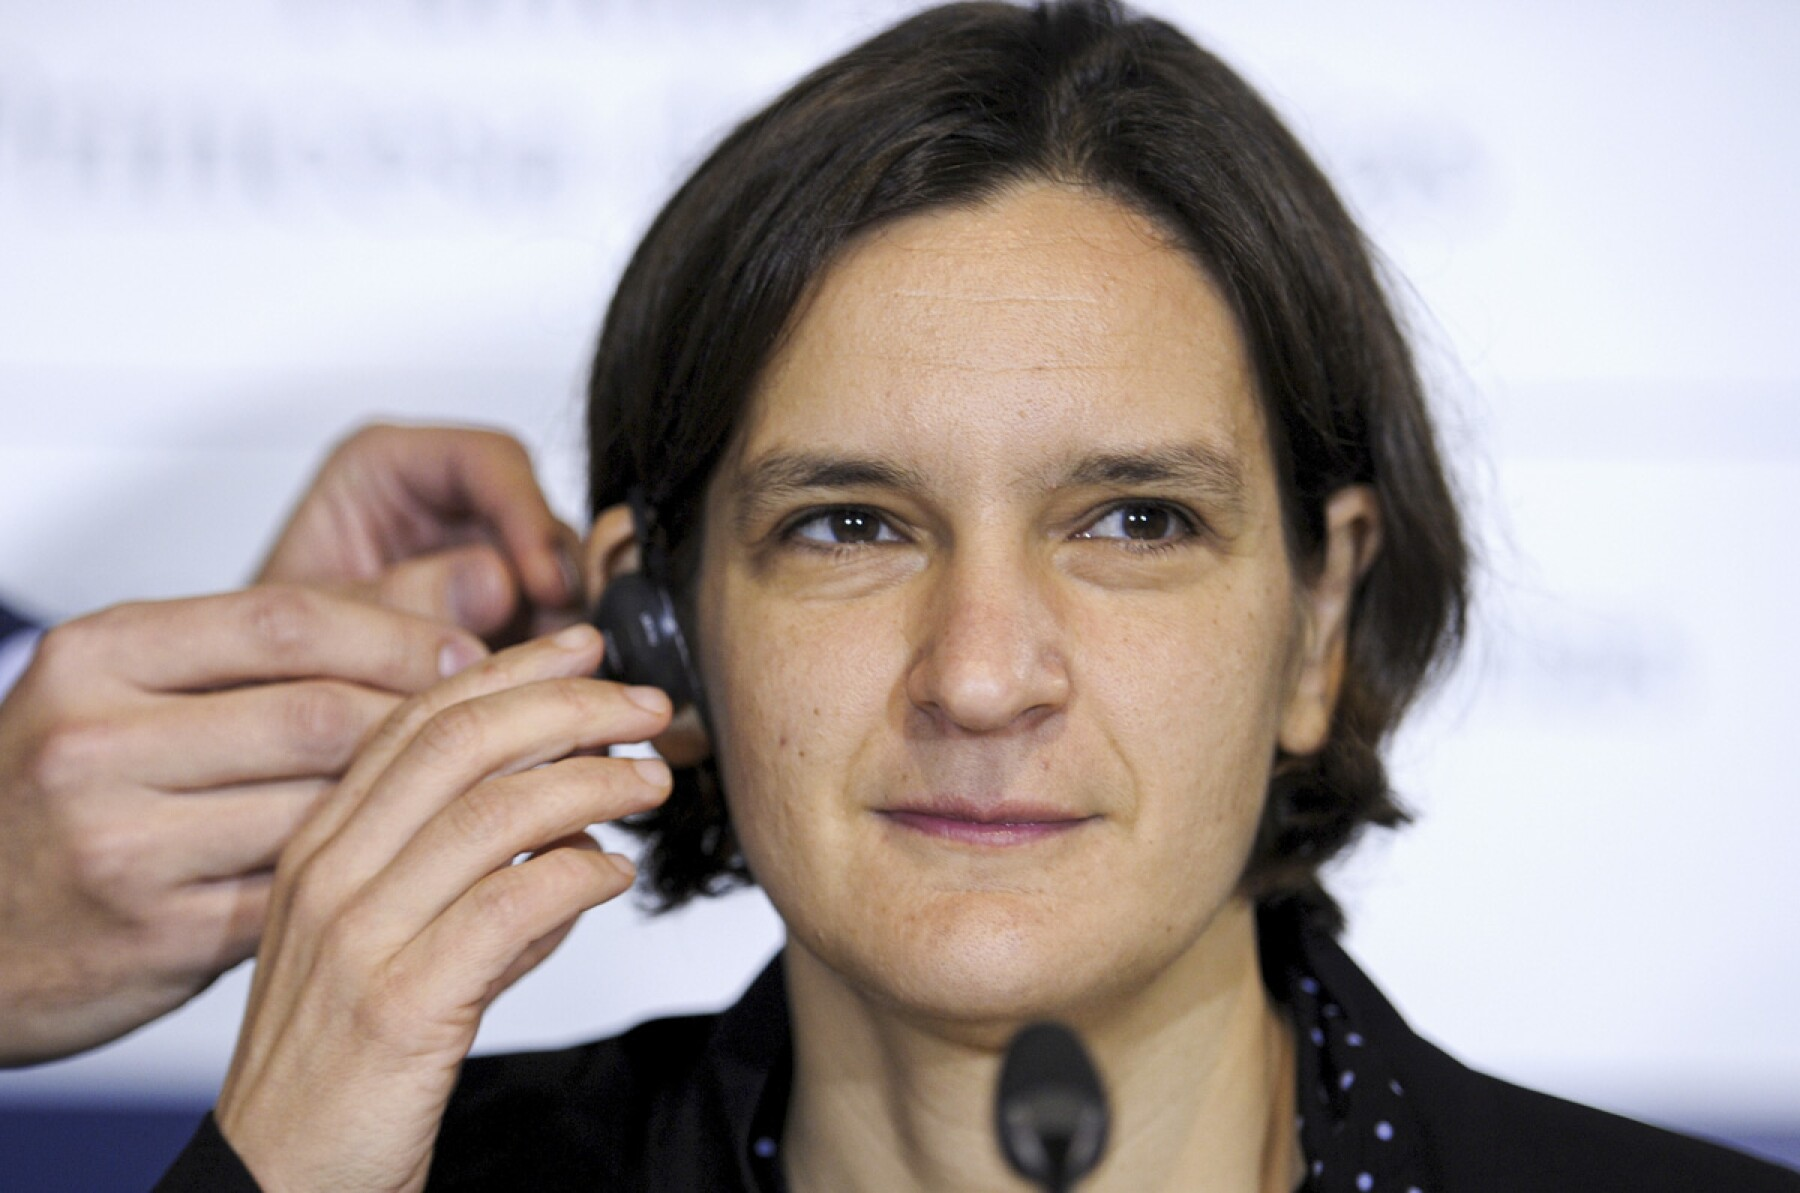 FILE PHOTO: French economist Esther Duflo gets fitted with an earphone before a news conference in Oviedo,